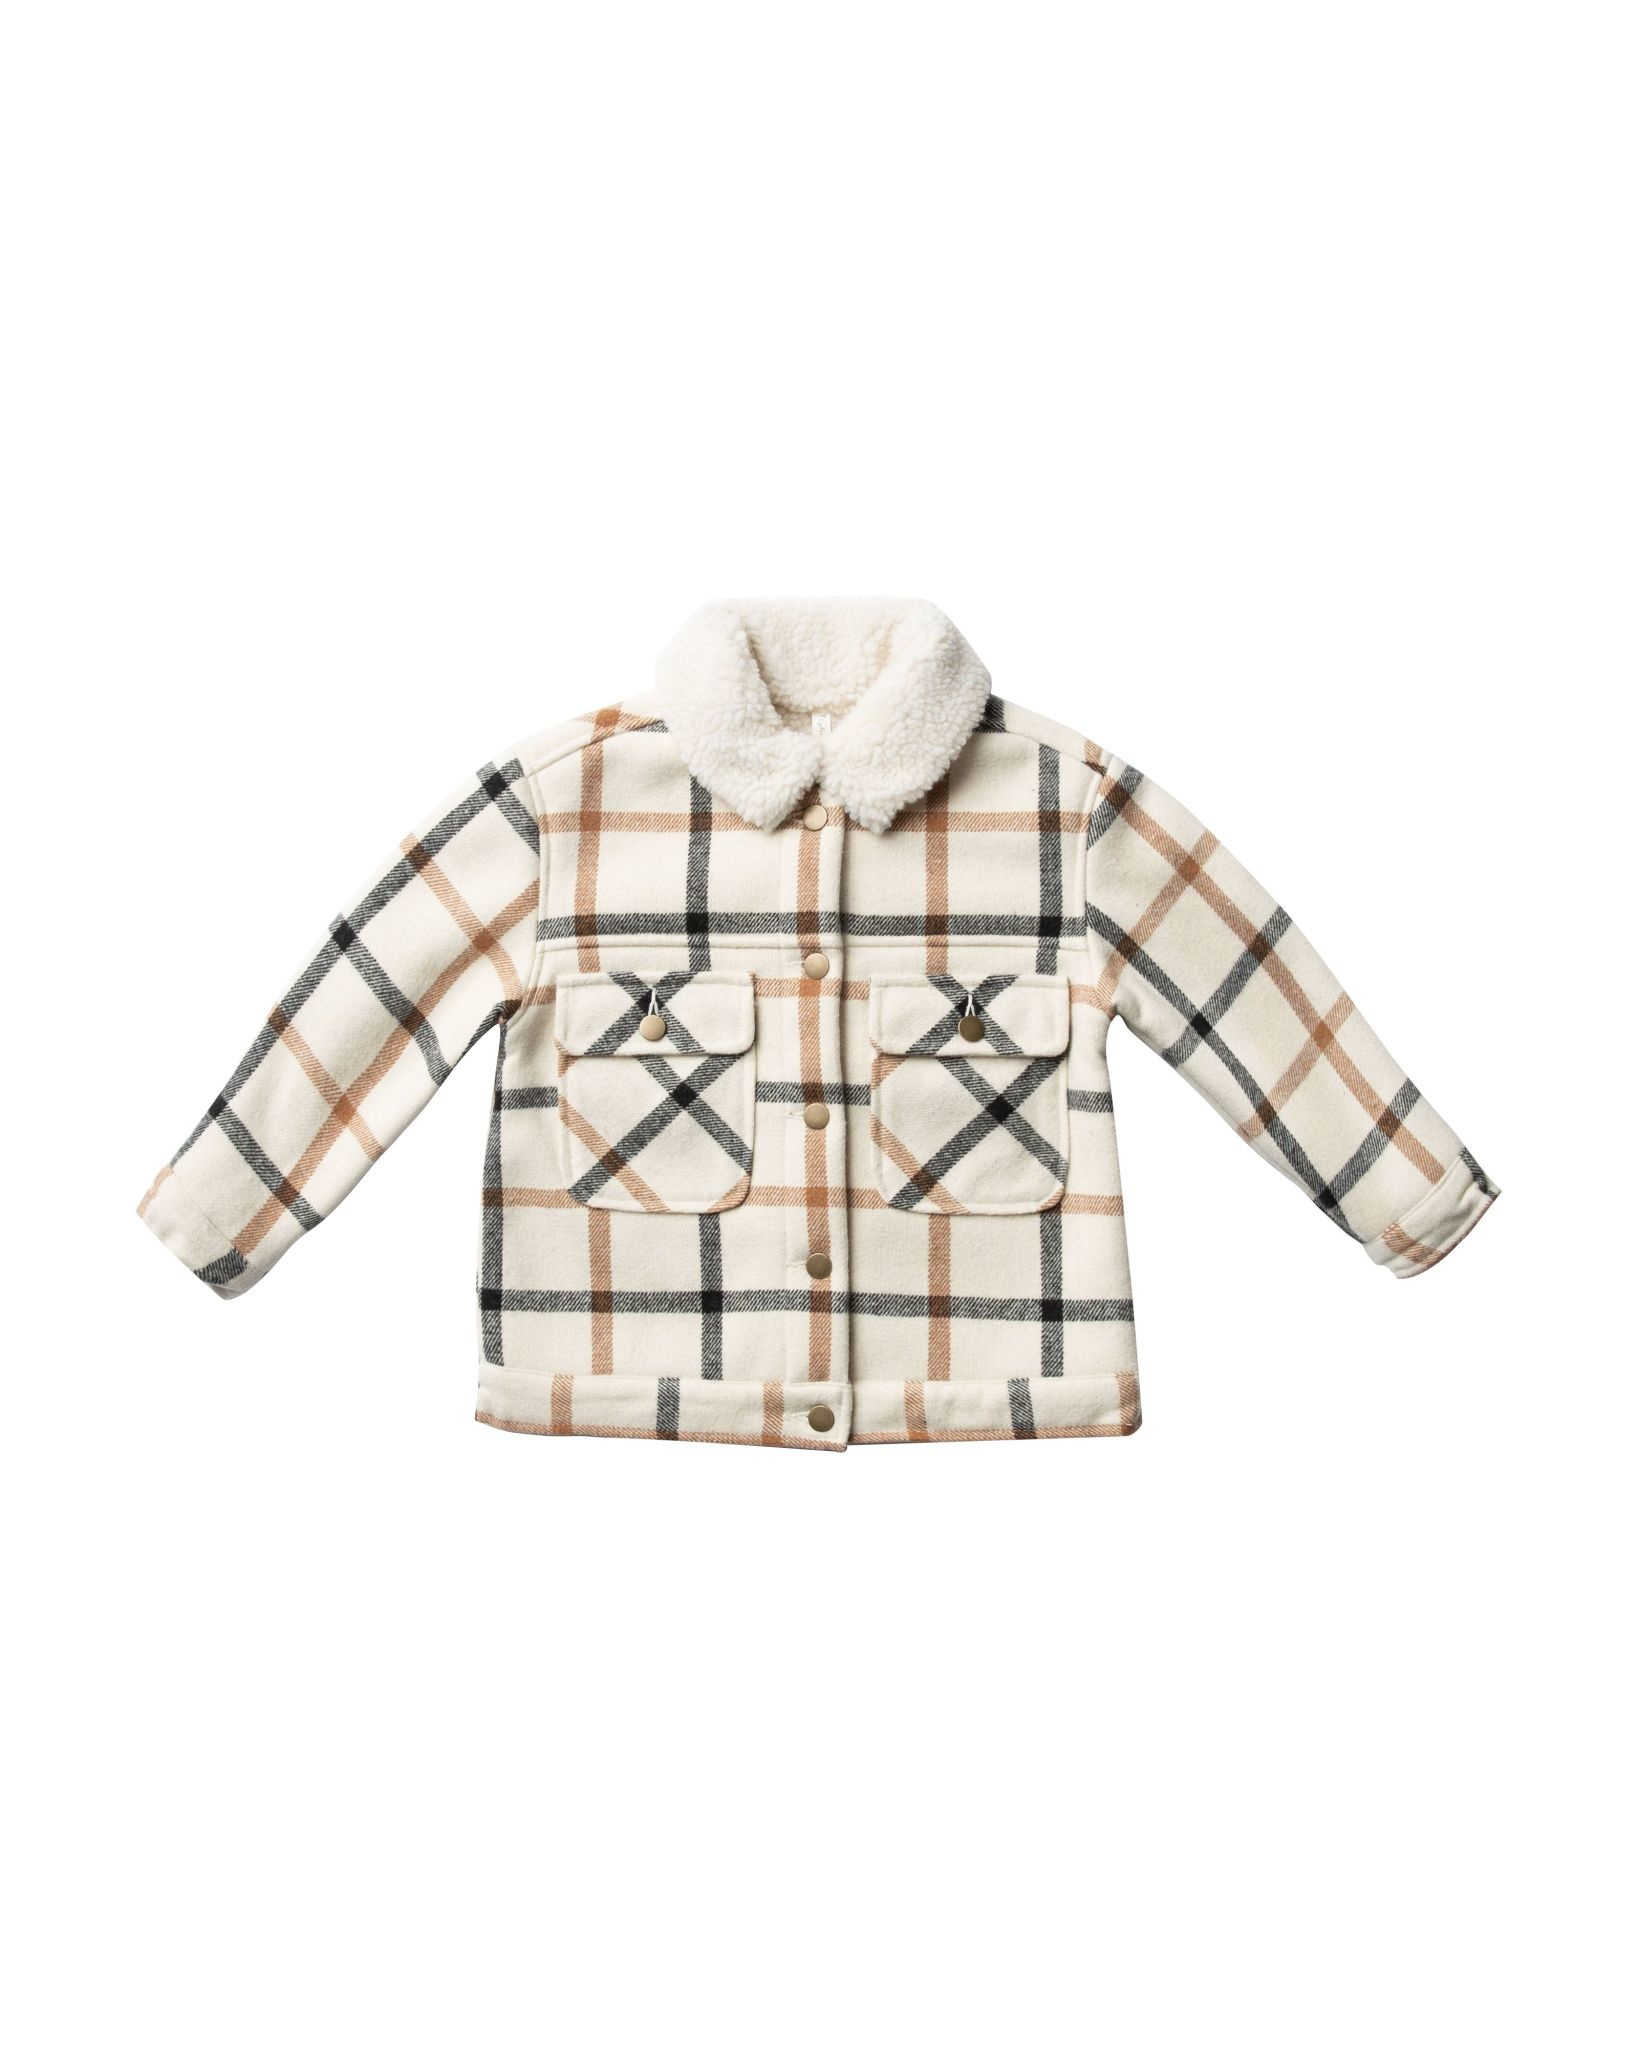 RYLEE AND CRU Julian Jacket